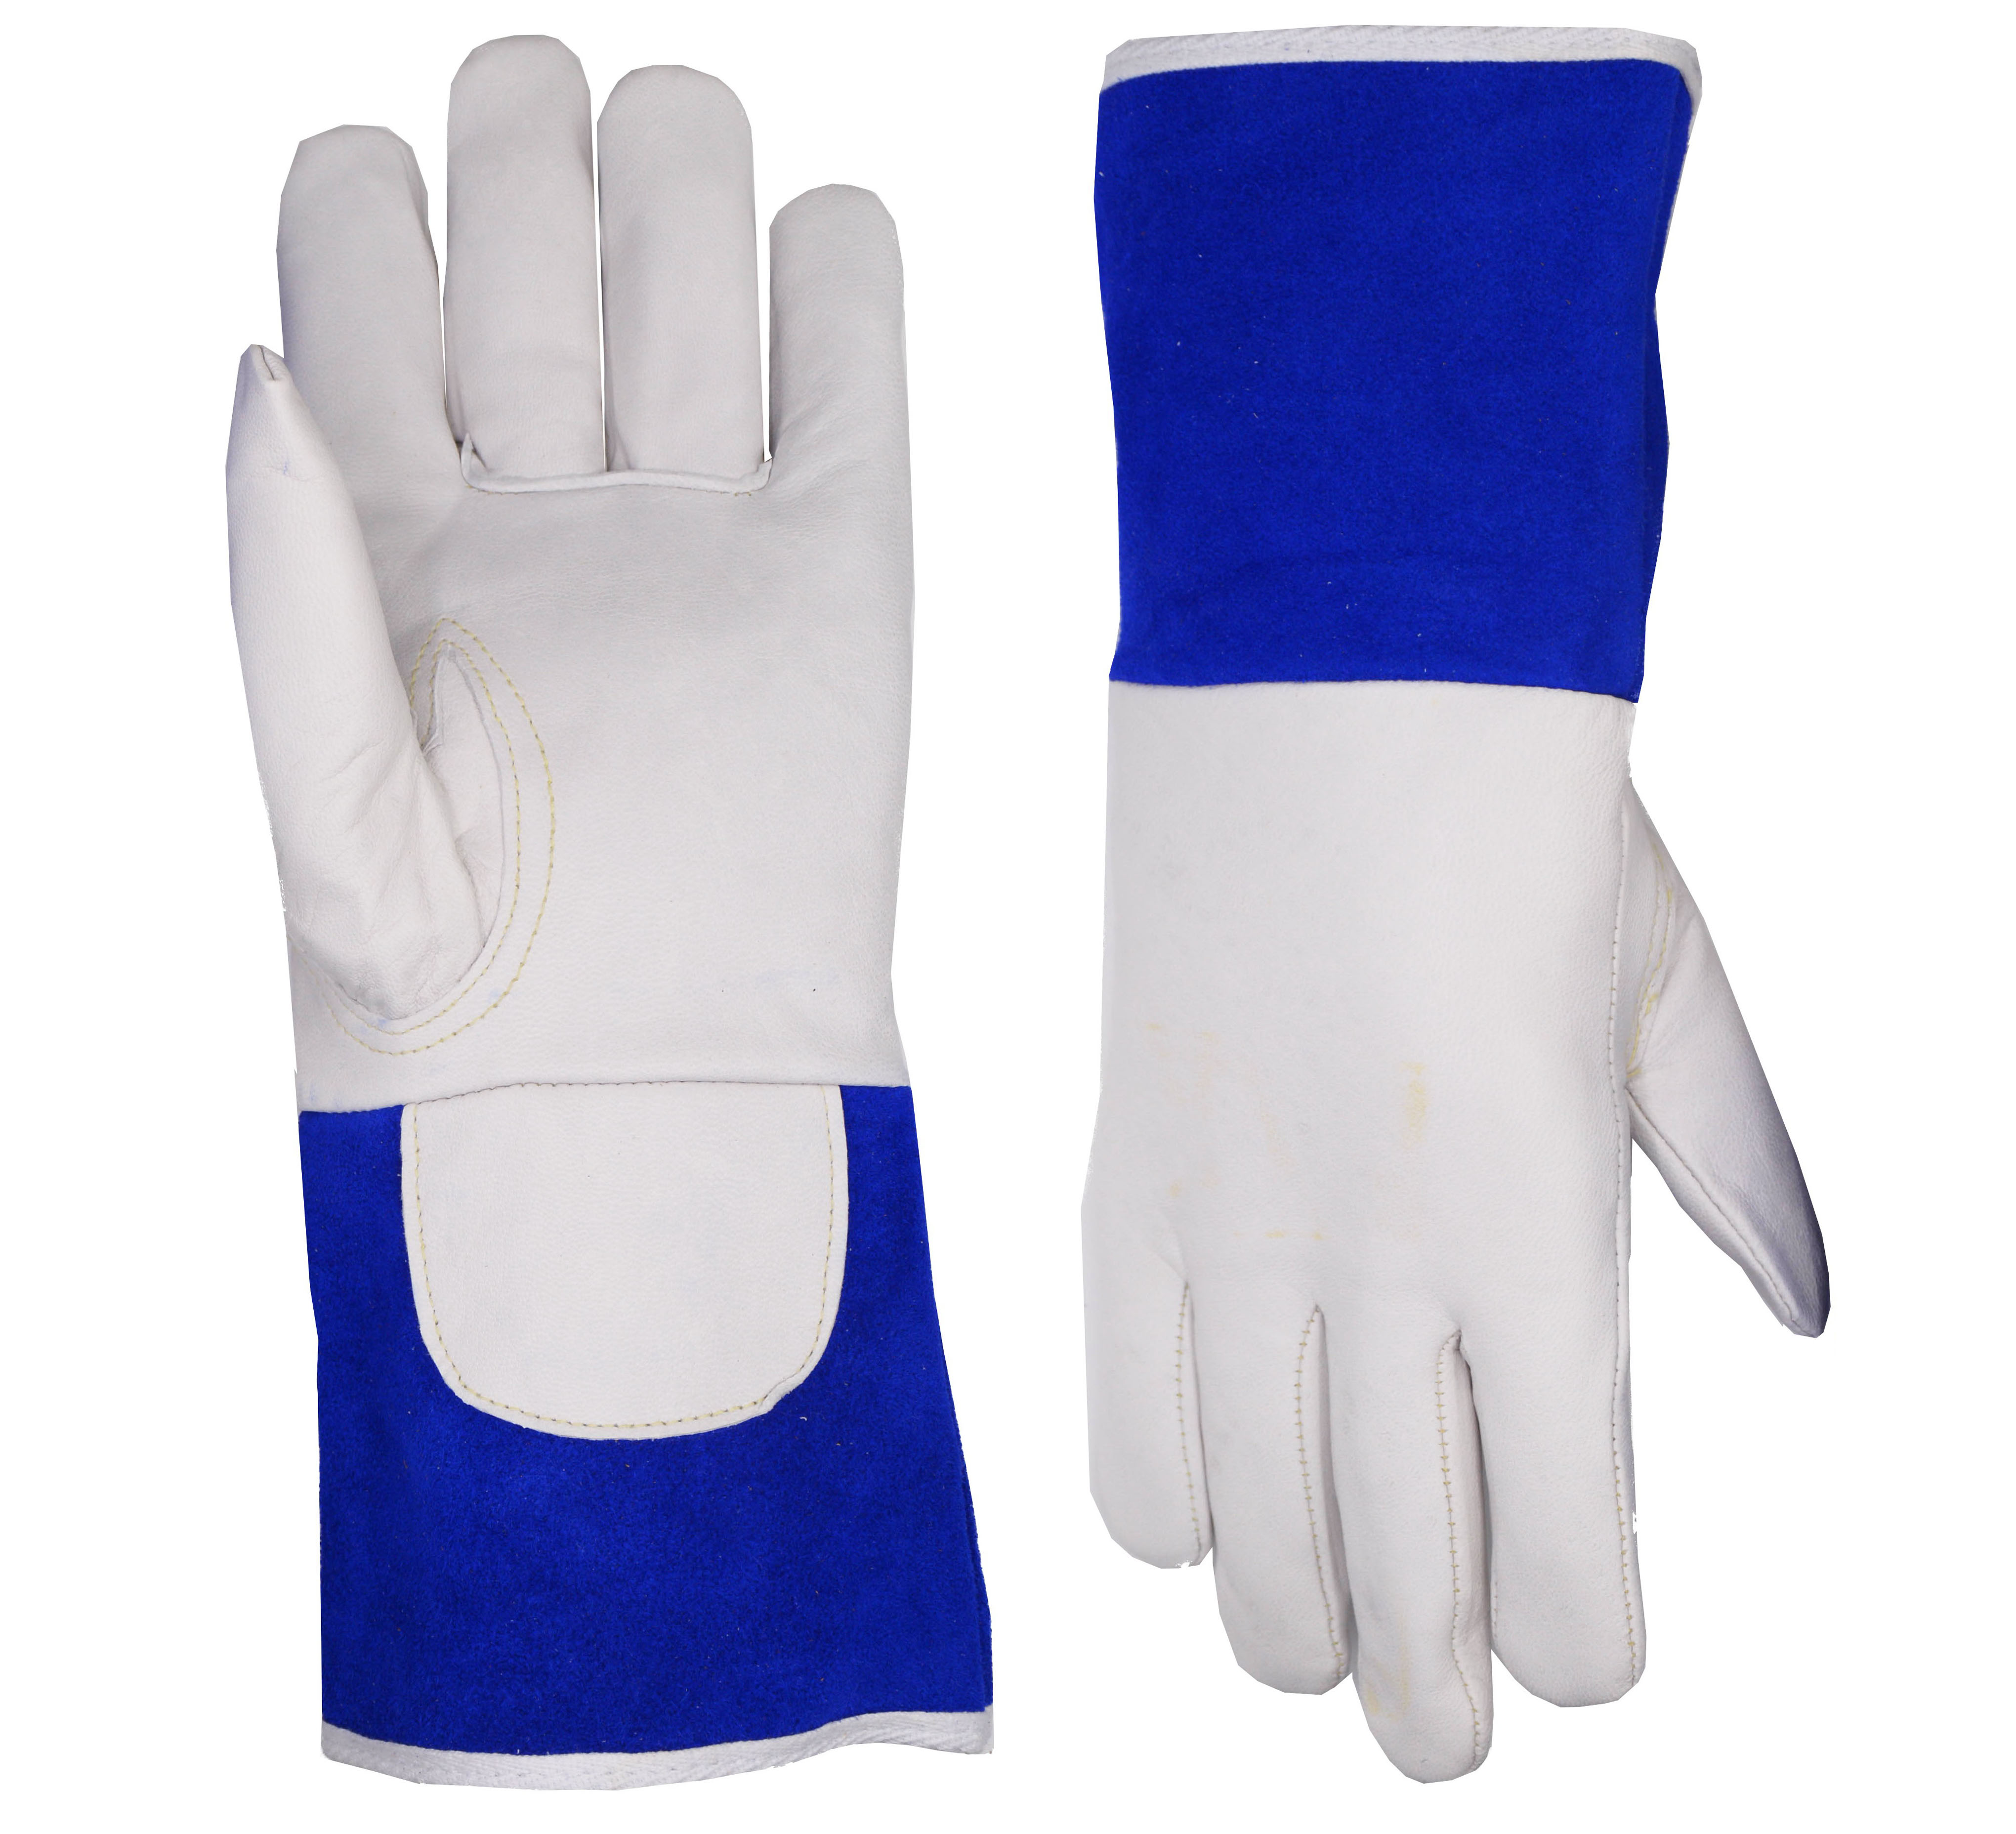 Excellent Grip ABTW Welders Gloves 3Pairs Suitable for TIG//MIG Welding//Gardening//Yard Work Premium Goatskin Leather with Split Leather Cuff with Improved Dexterity White, Large, 190703L